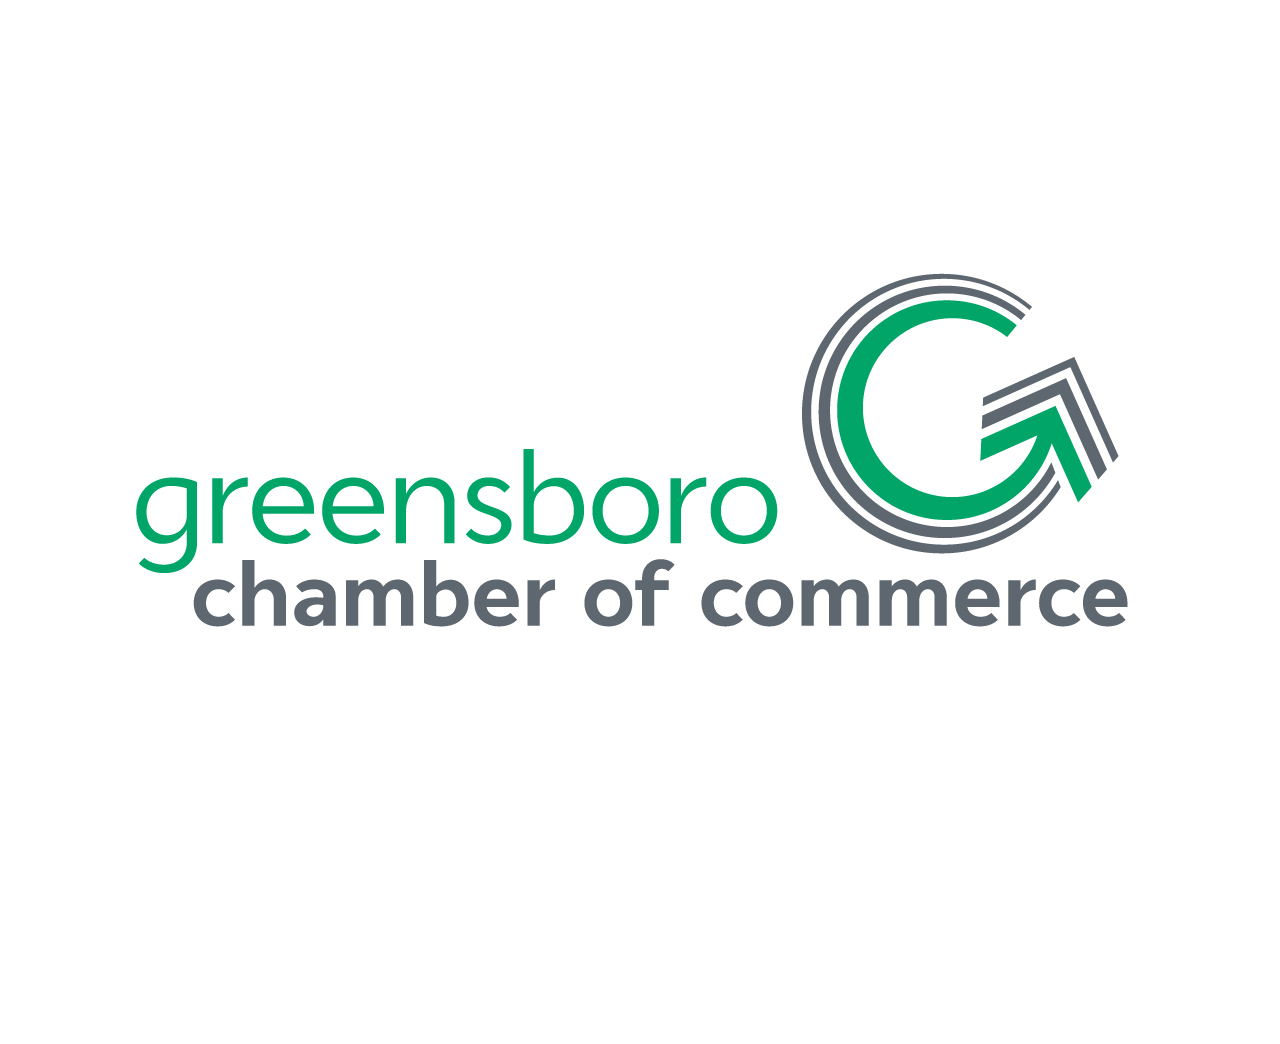 Greensboro Chamber of Commerce Logo Design and Branding